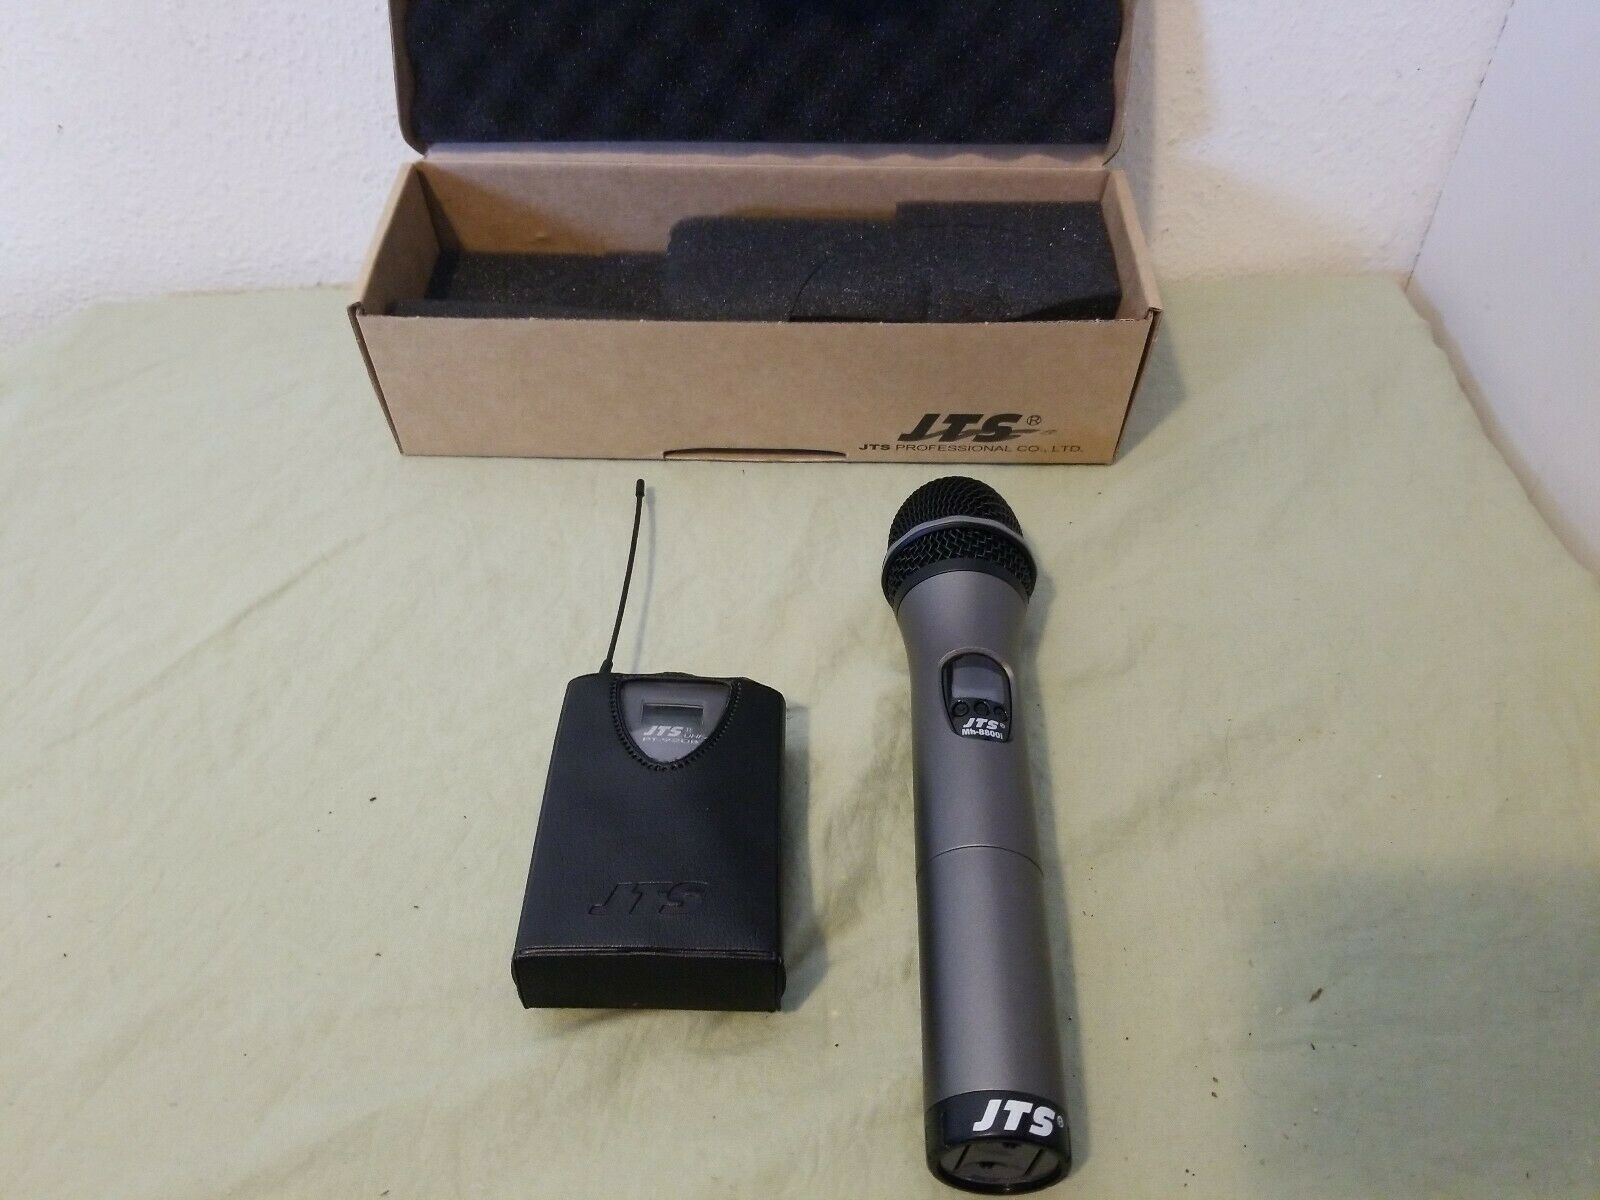 JTS Mh-8800i & PT-920B Wireless Microphone (638662MHz)